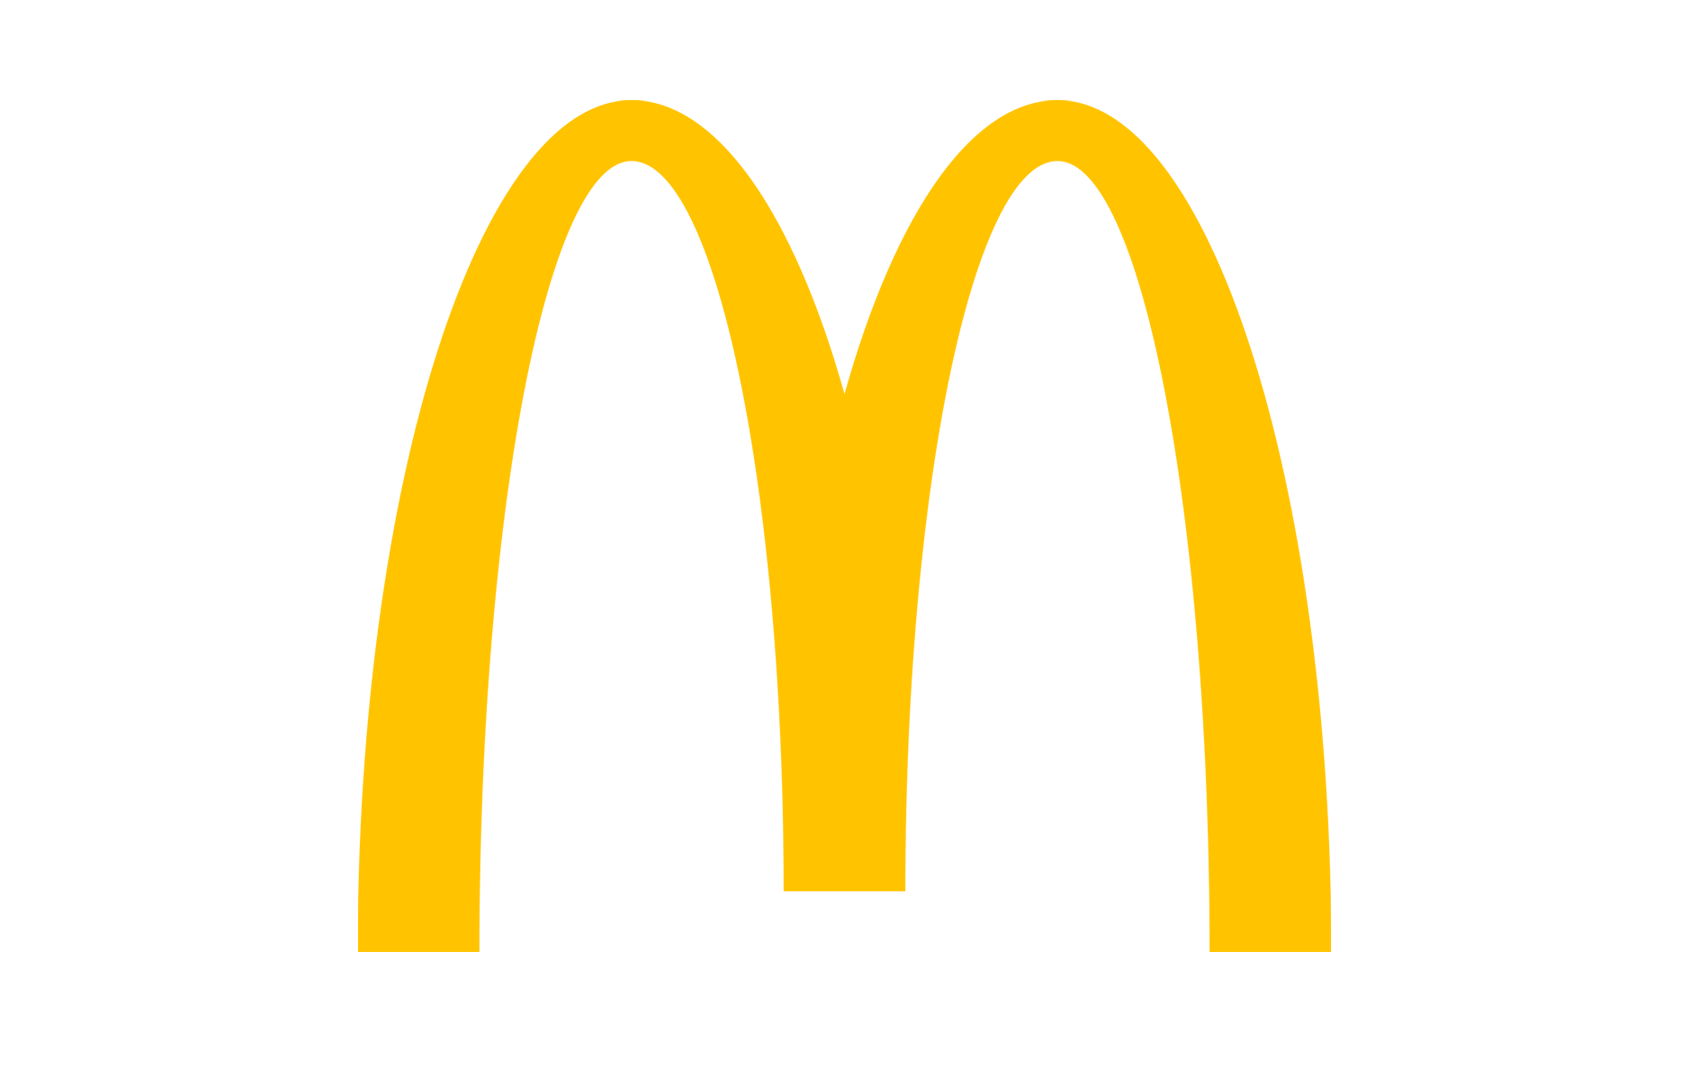 Meaning McDonalds logo and symbol.